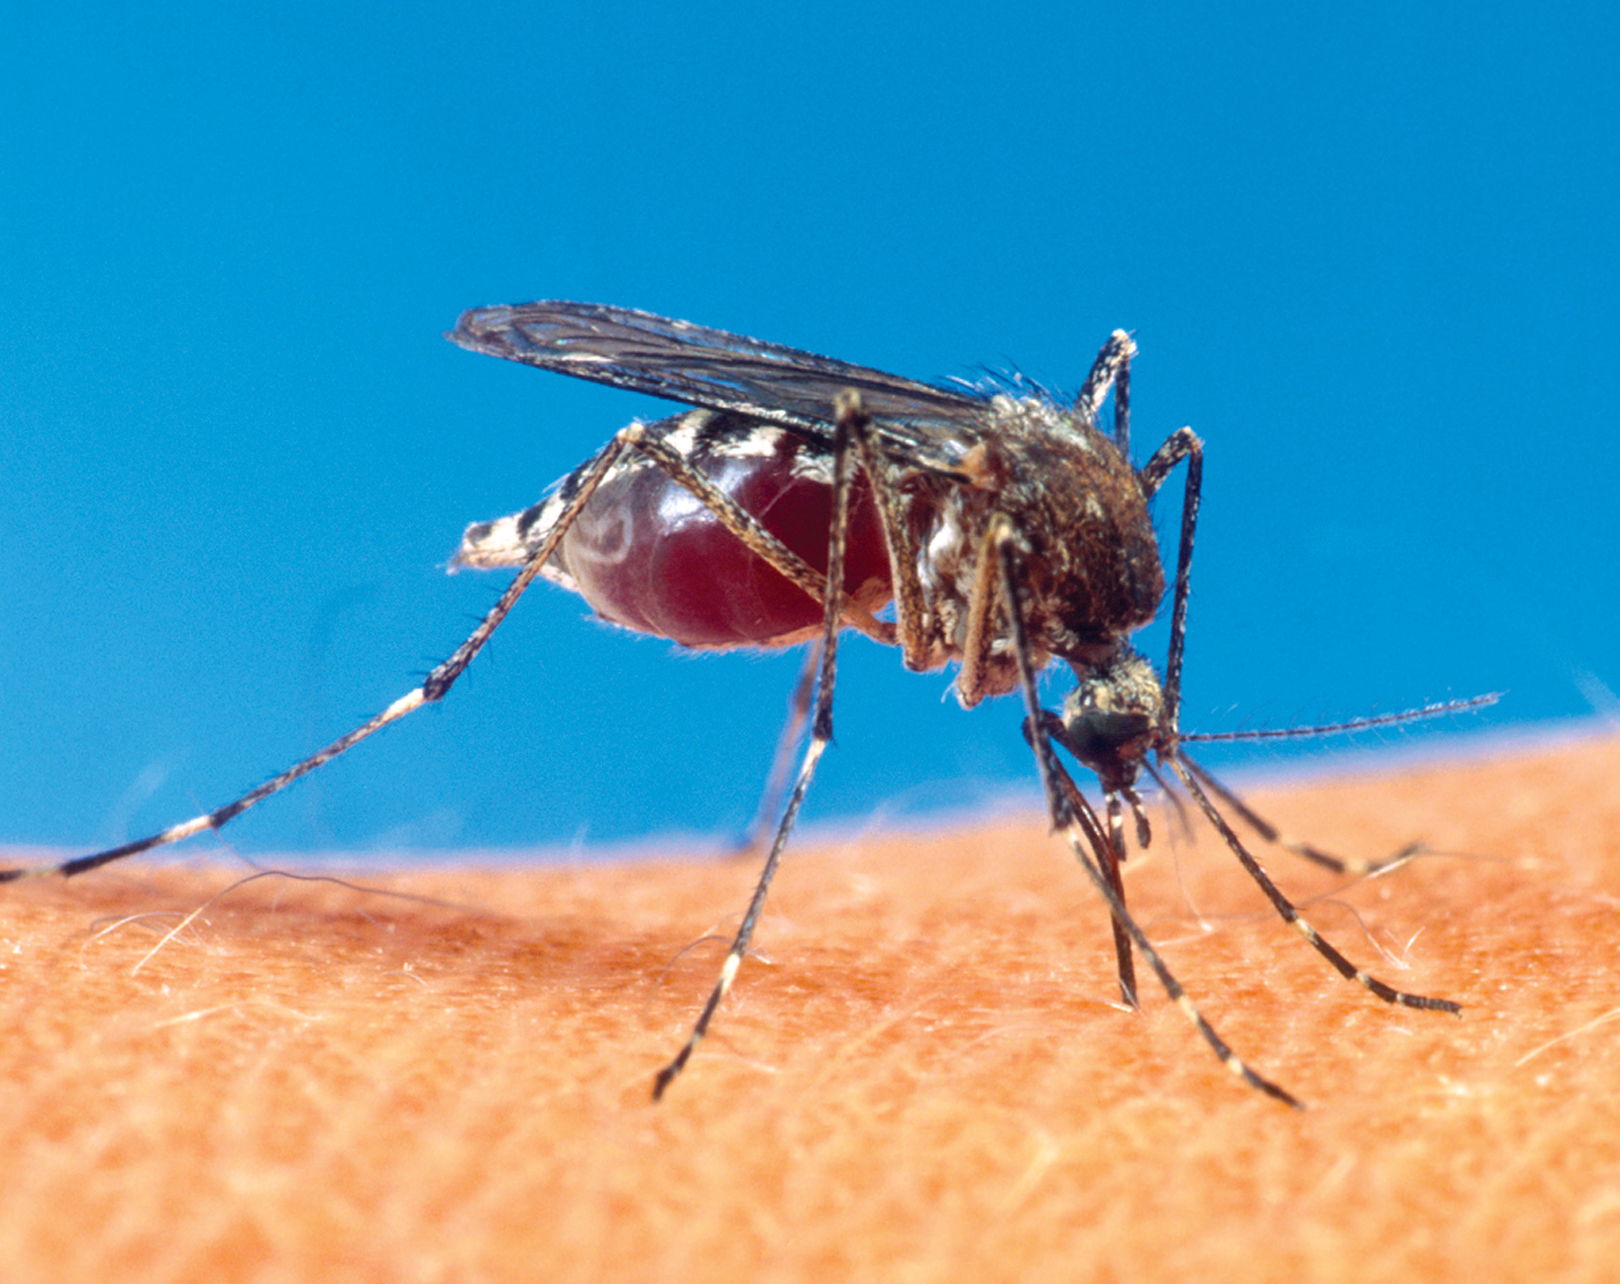 Health department reports confirmed case of West Nile Virus in Lexington